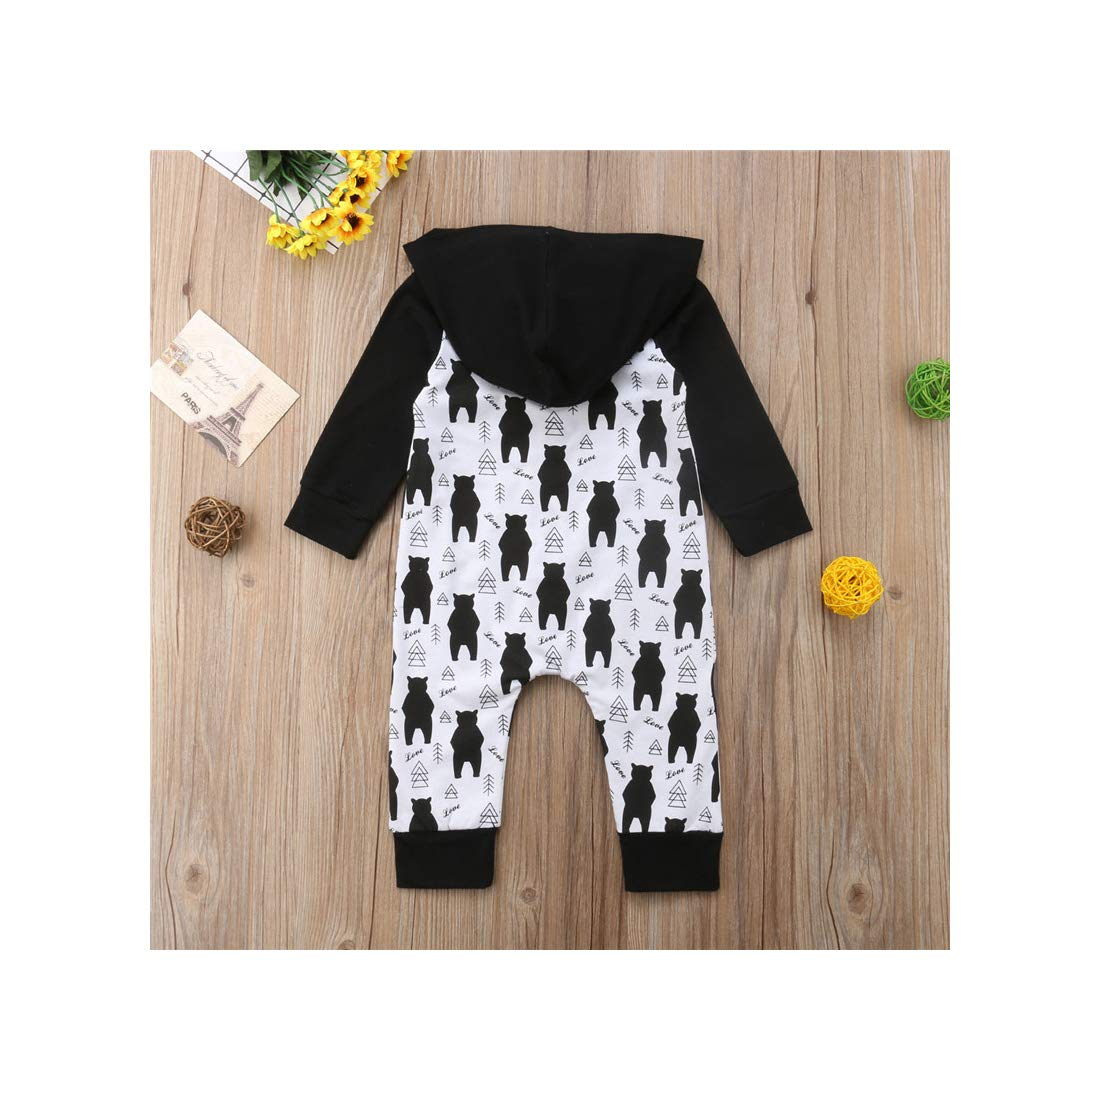 Yuehen Cute Kids Baby Boy Girl Hooded Romper Clothes Boys Autumn Bear Tree One Piece Jumpsuit Rompers Cotton Outfits Romper